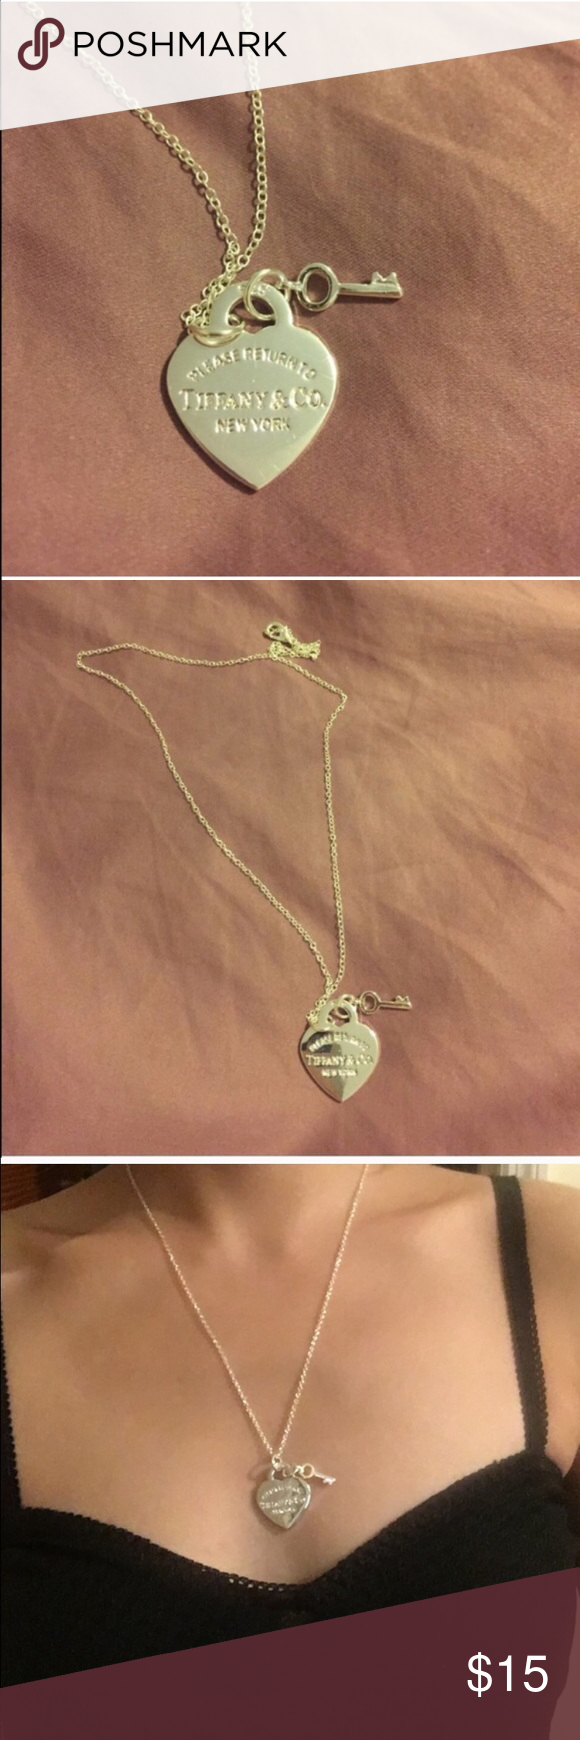 Silver heart designer necklace NEW Not authentic. Jewelry Necklaces